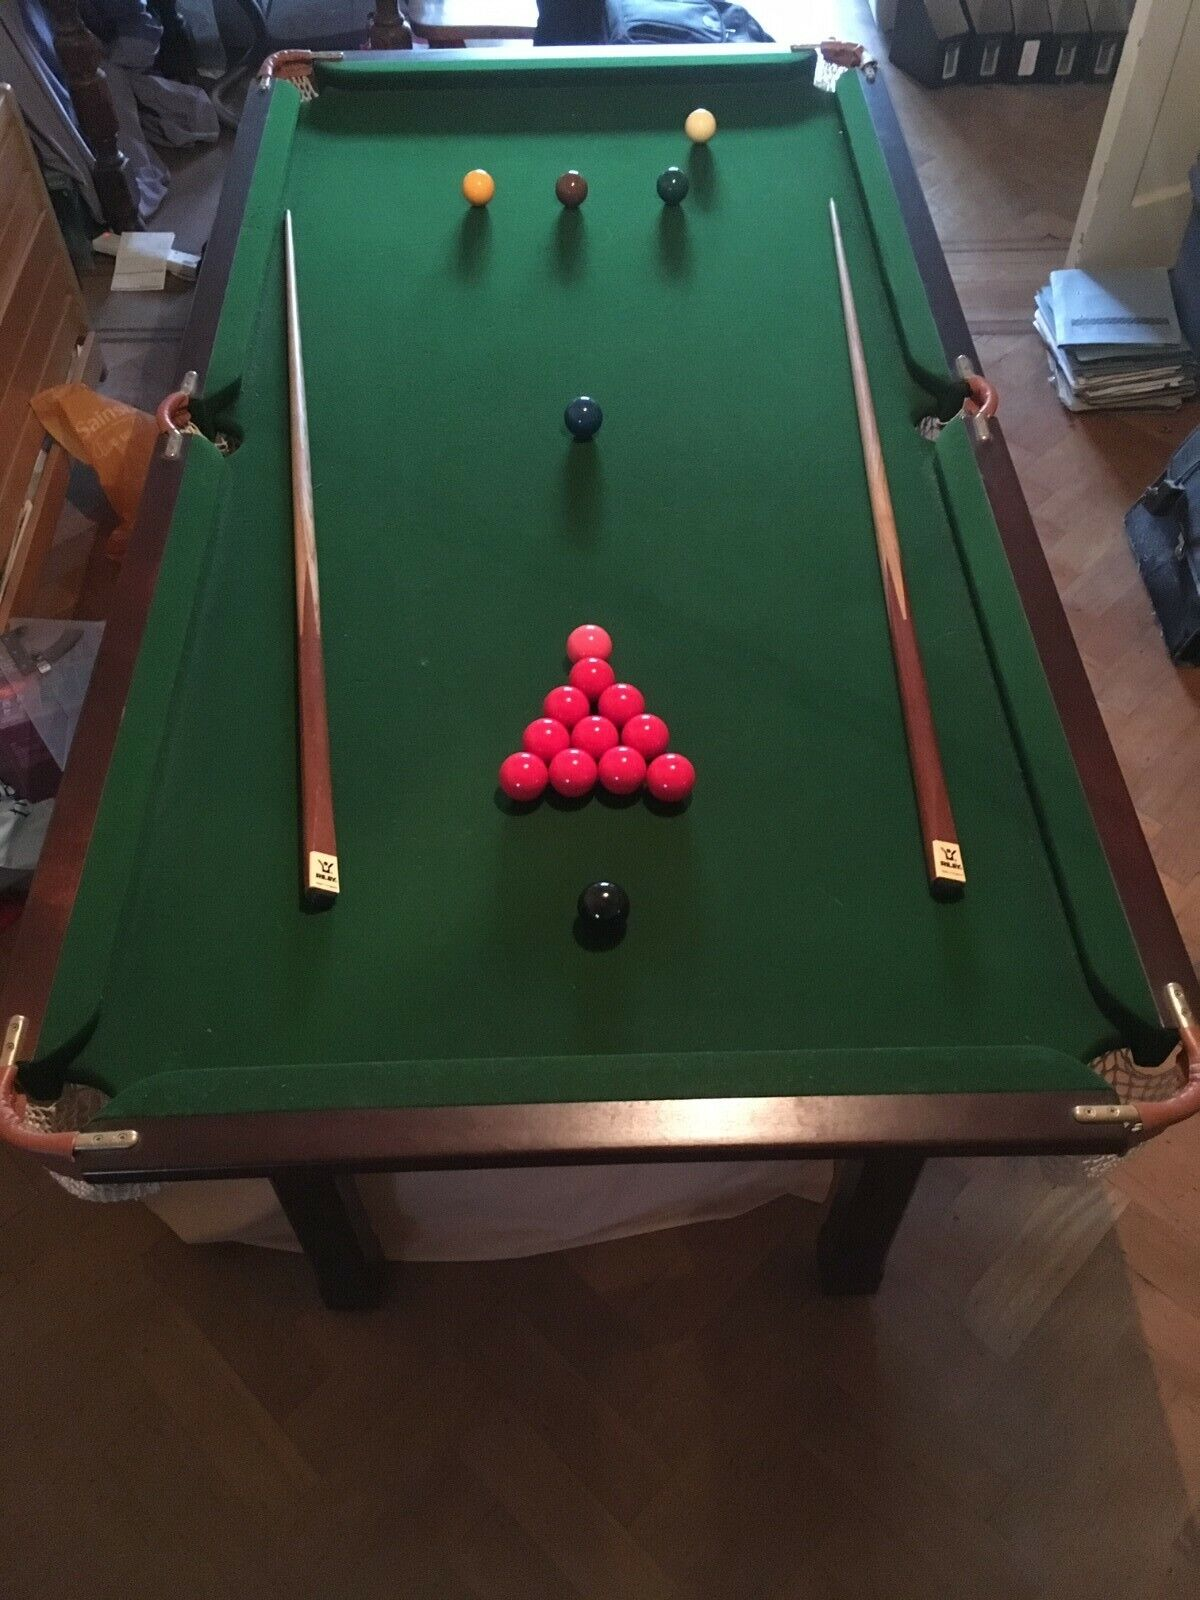 Riley 6 foot x 3 foot snooker and pool table. Complete cue's and ball stes.